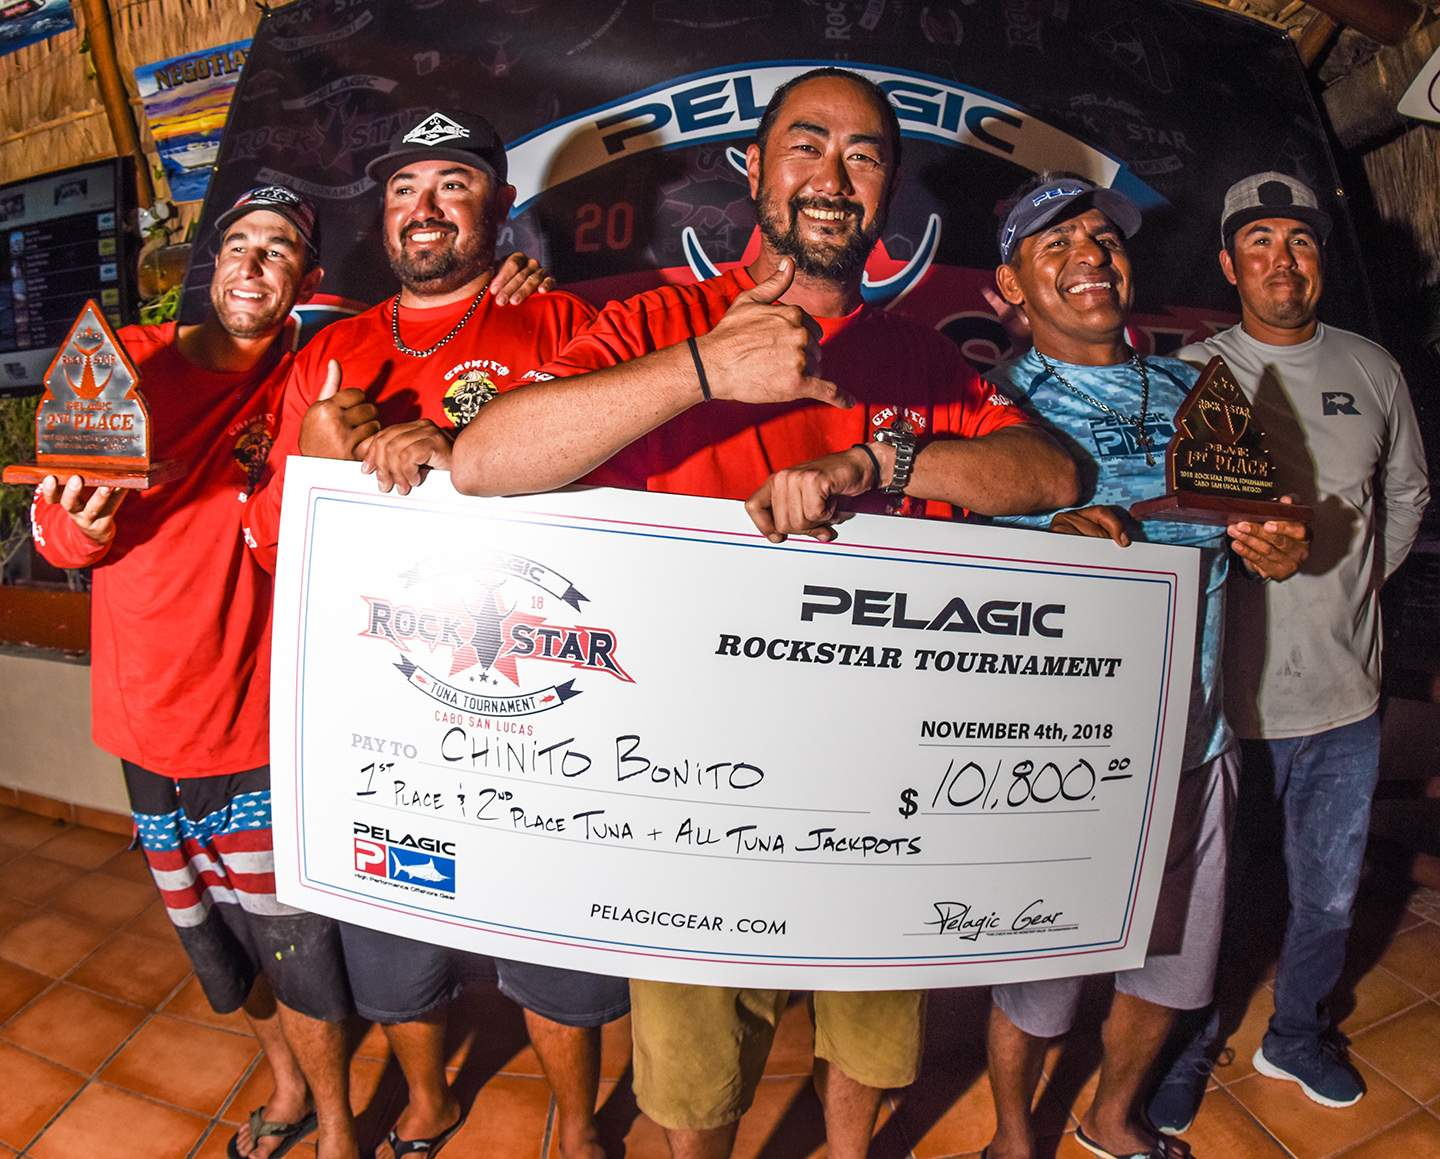 Chinito Bonito winning check 2 Pelagic Rockstar Tuna Tournament